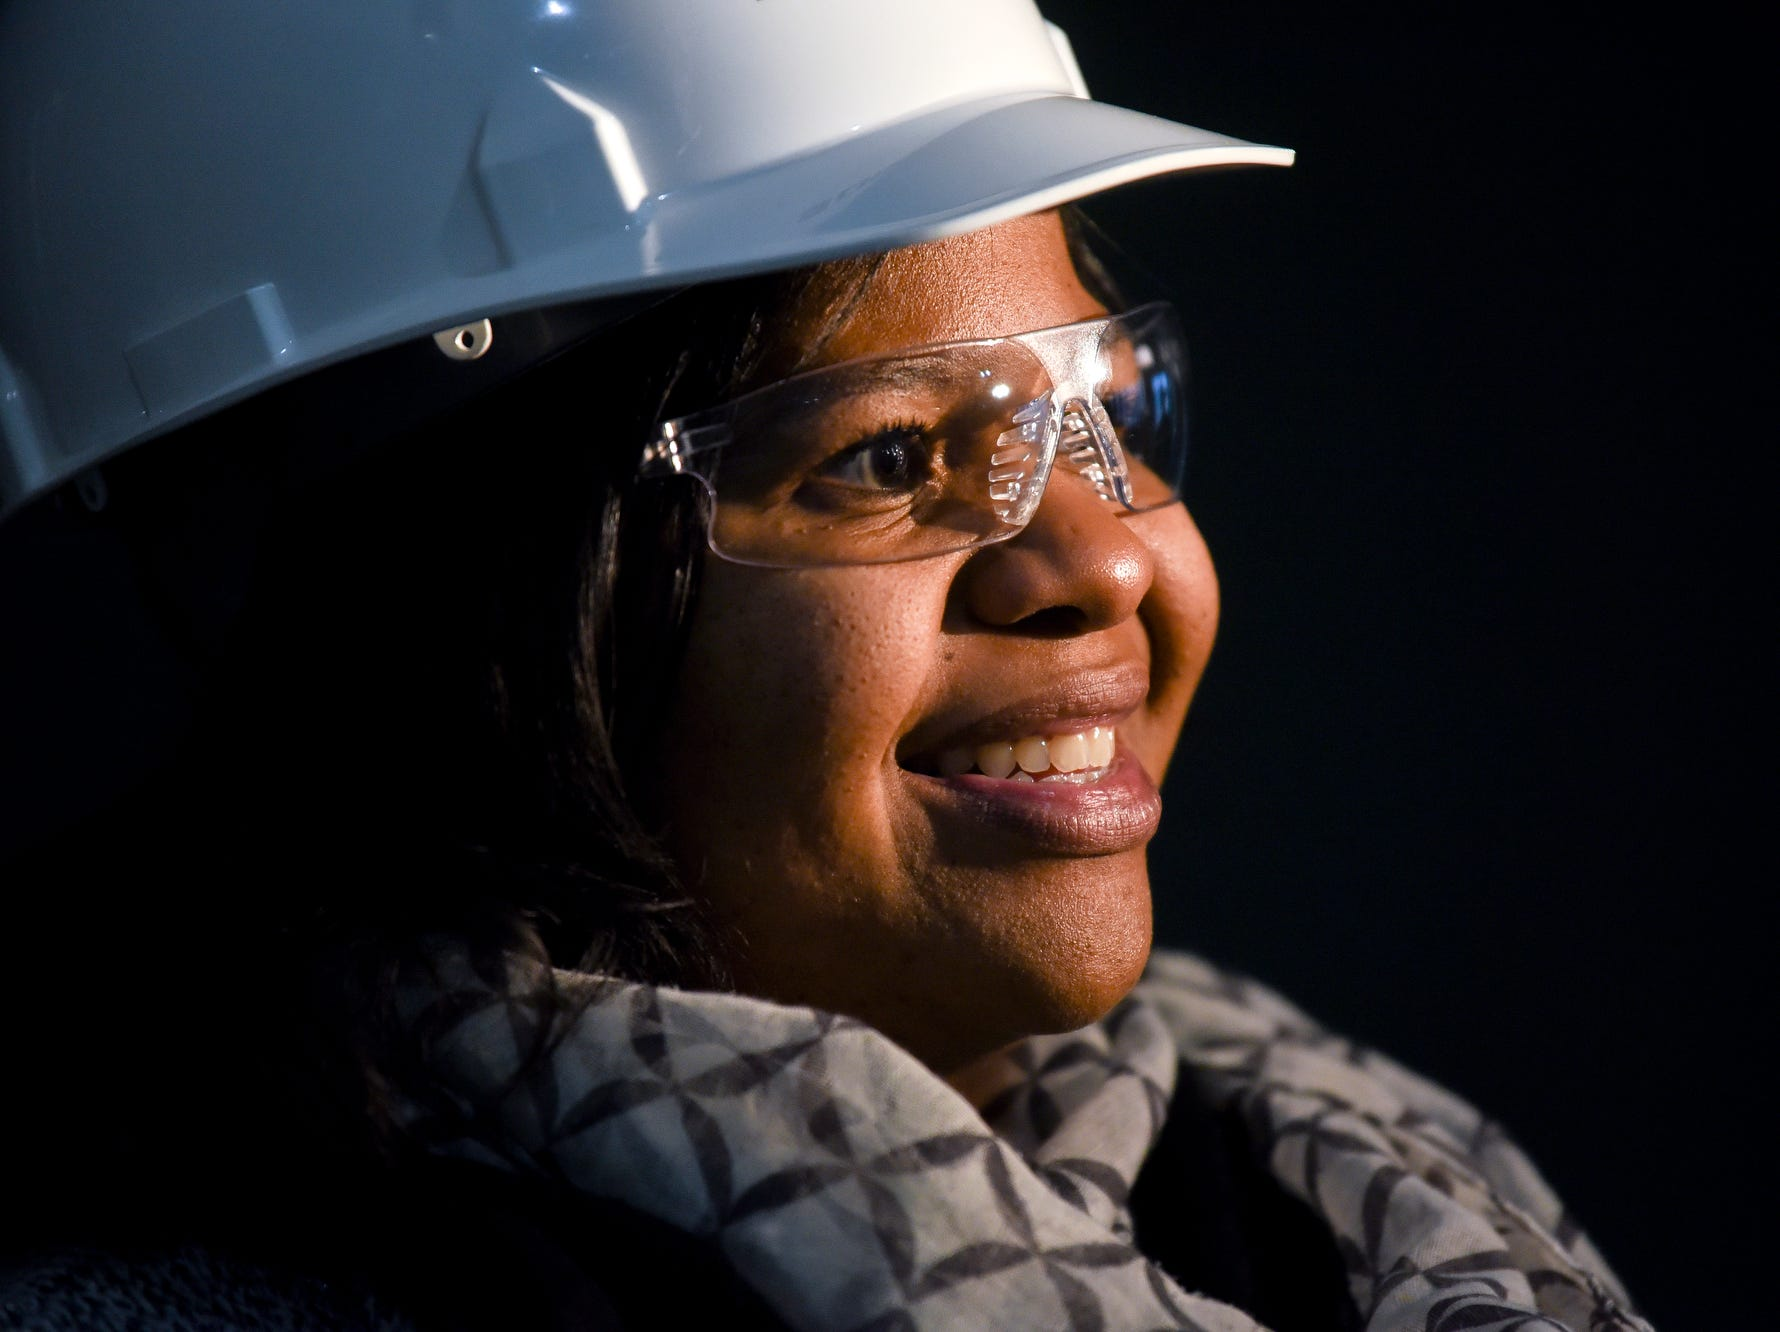 Lansing School District Board President Rachel Lewis smiles during a tour of the construction of the new Eastern High School on Thursday, March 14, 2019, in Lansing. The project is being funded by the district's successful Pathway Promise millage, which was passed by voters in 2016. The building was formerly Pattengill Academy.